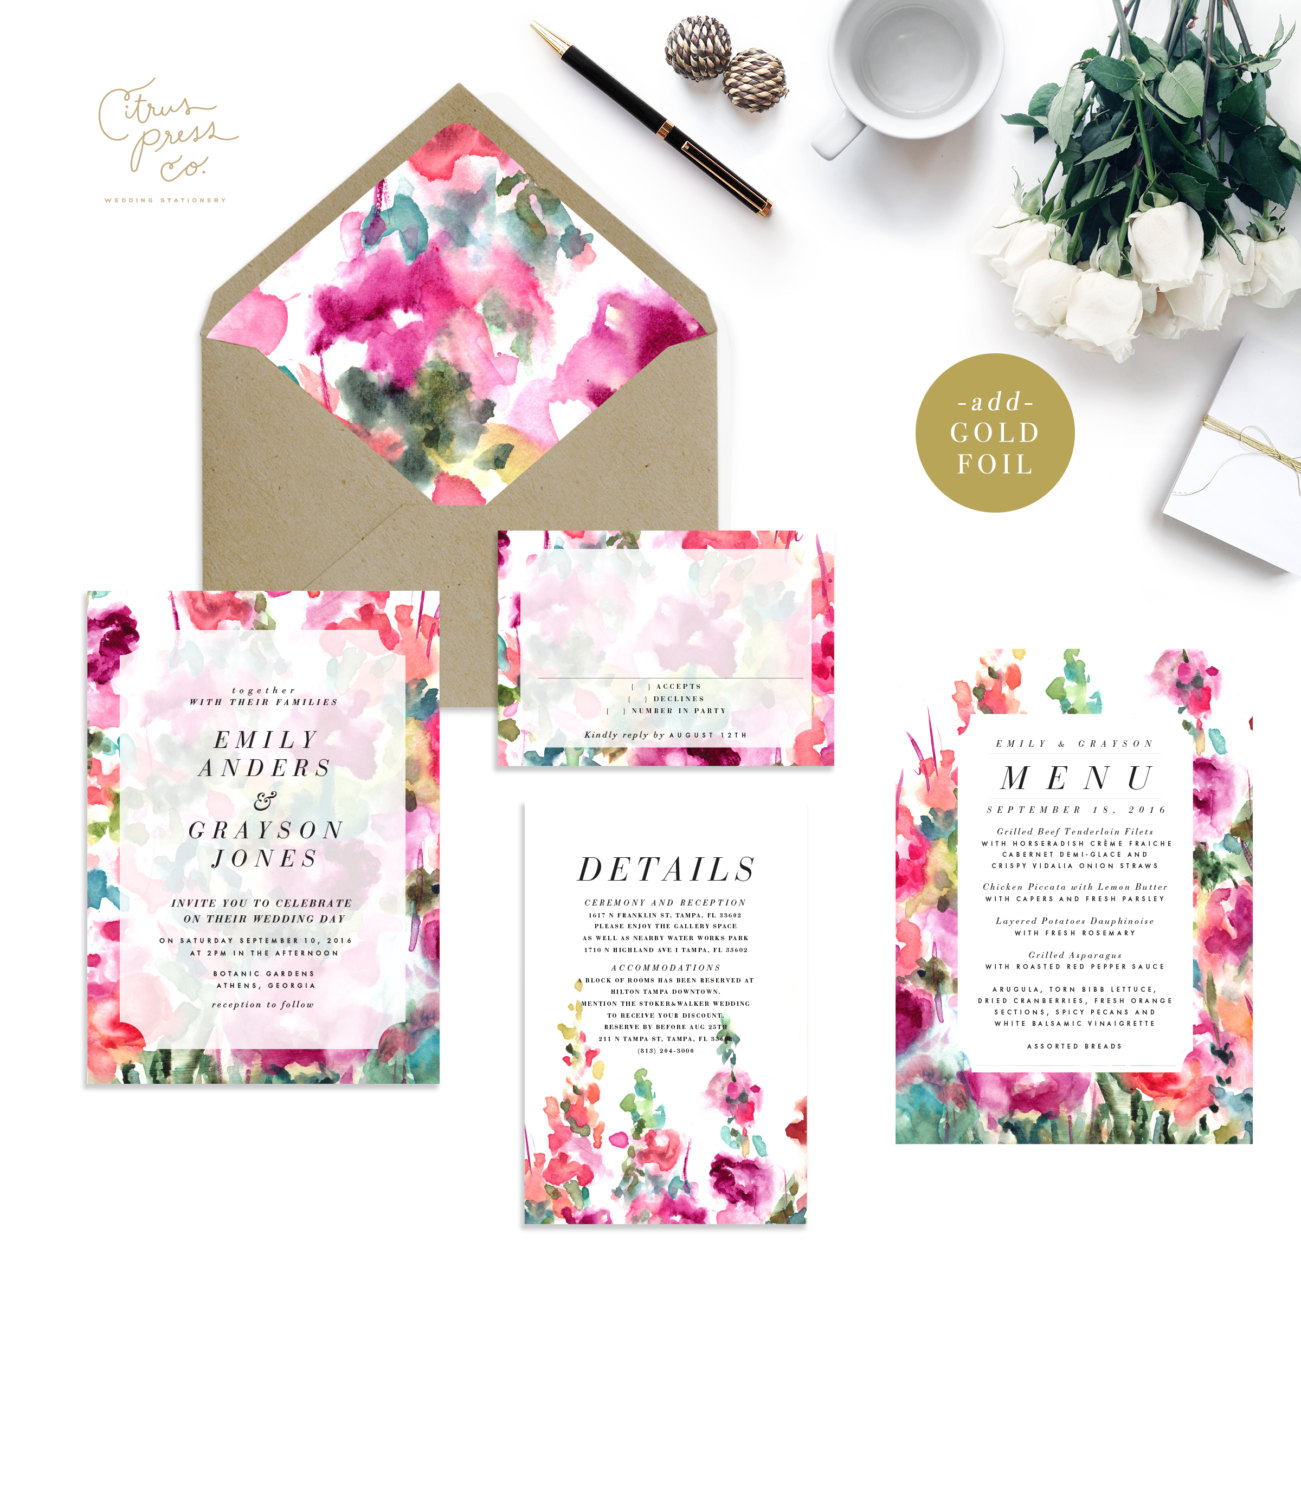 spring garden wedding invitations | 6 Floral Botanical Invitations for Spring Weddings http://wp.me/p1g0if-yOx by Citrus Press Co.